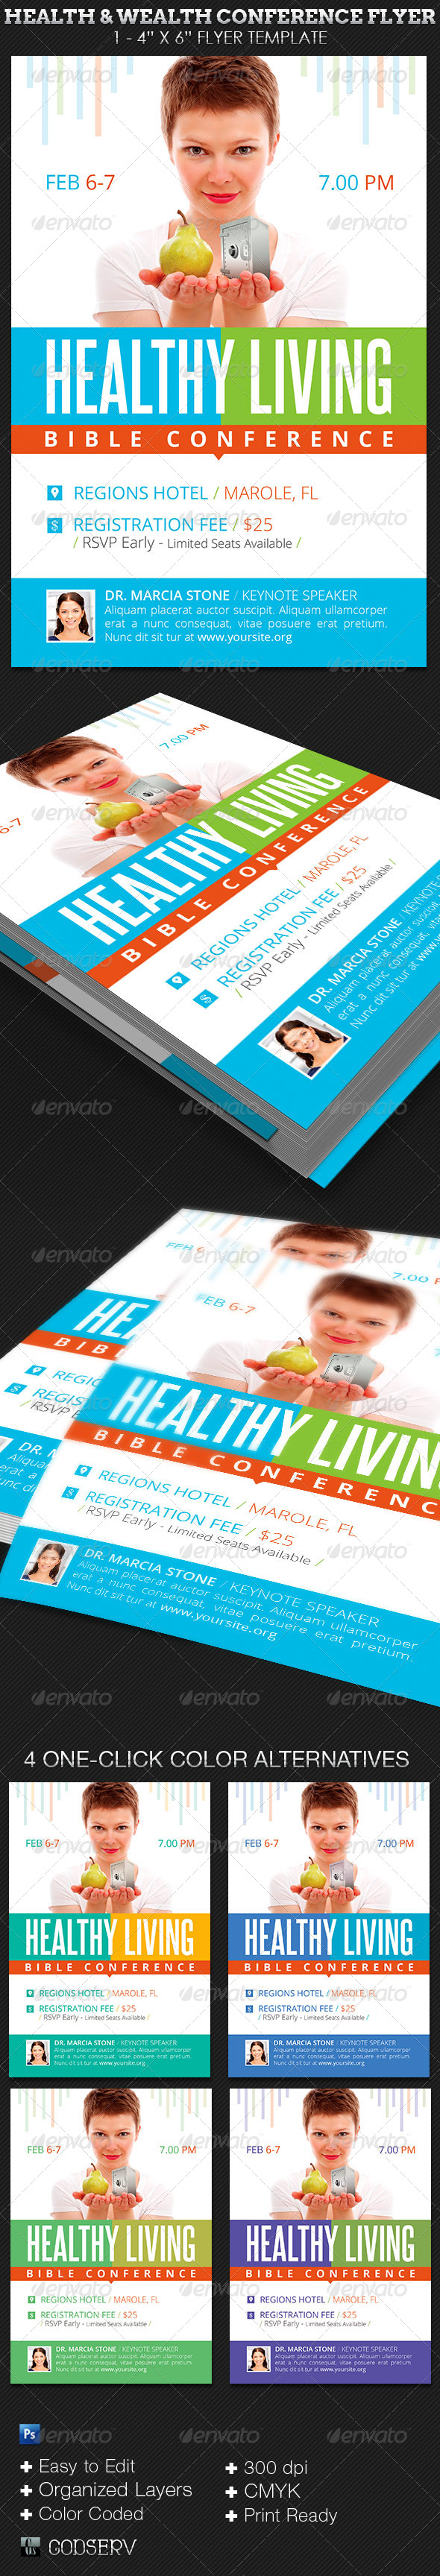 Health and Wealth Church Conference Flyer Template - Church Flyers